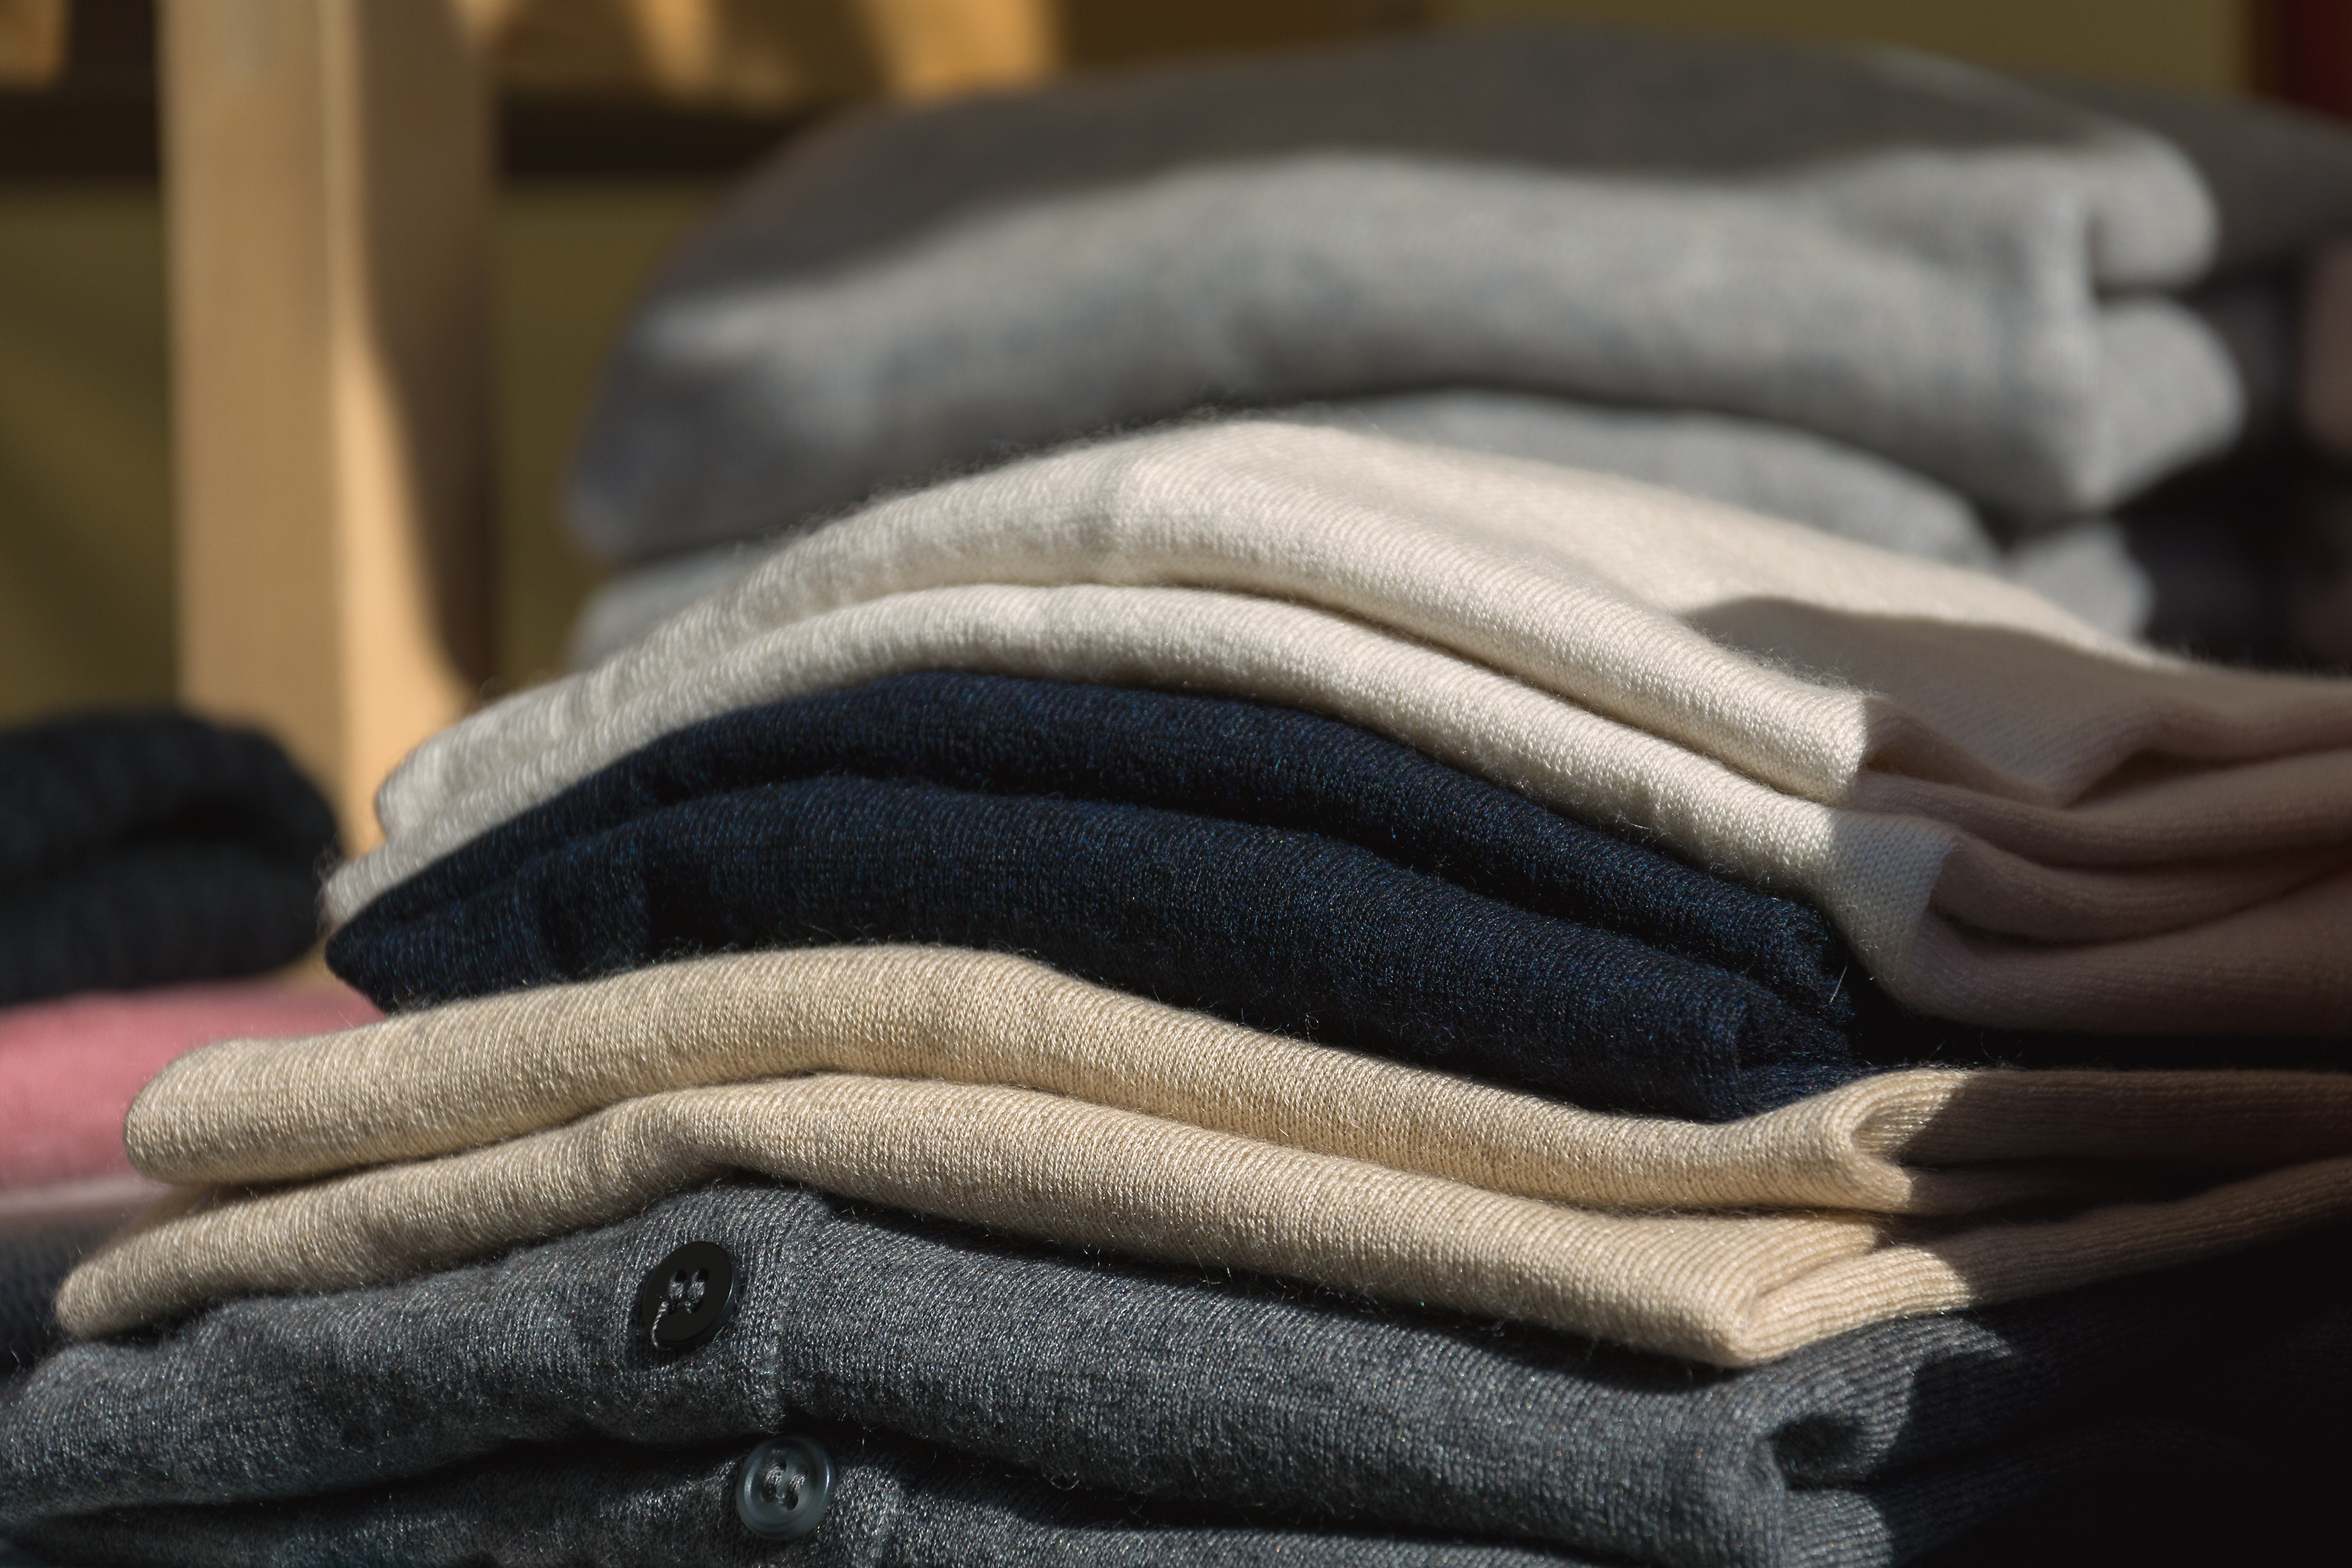 The Task of Folded Sweaters